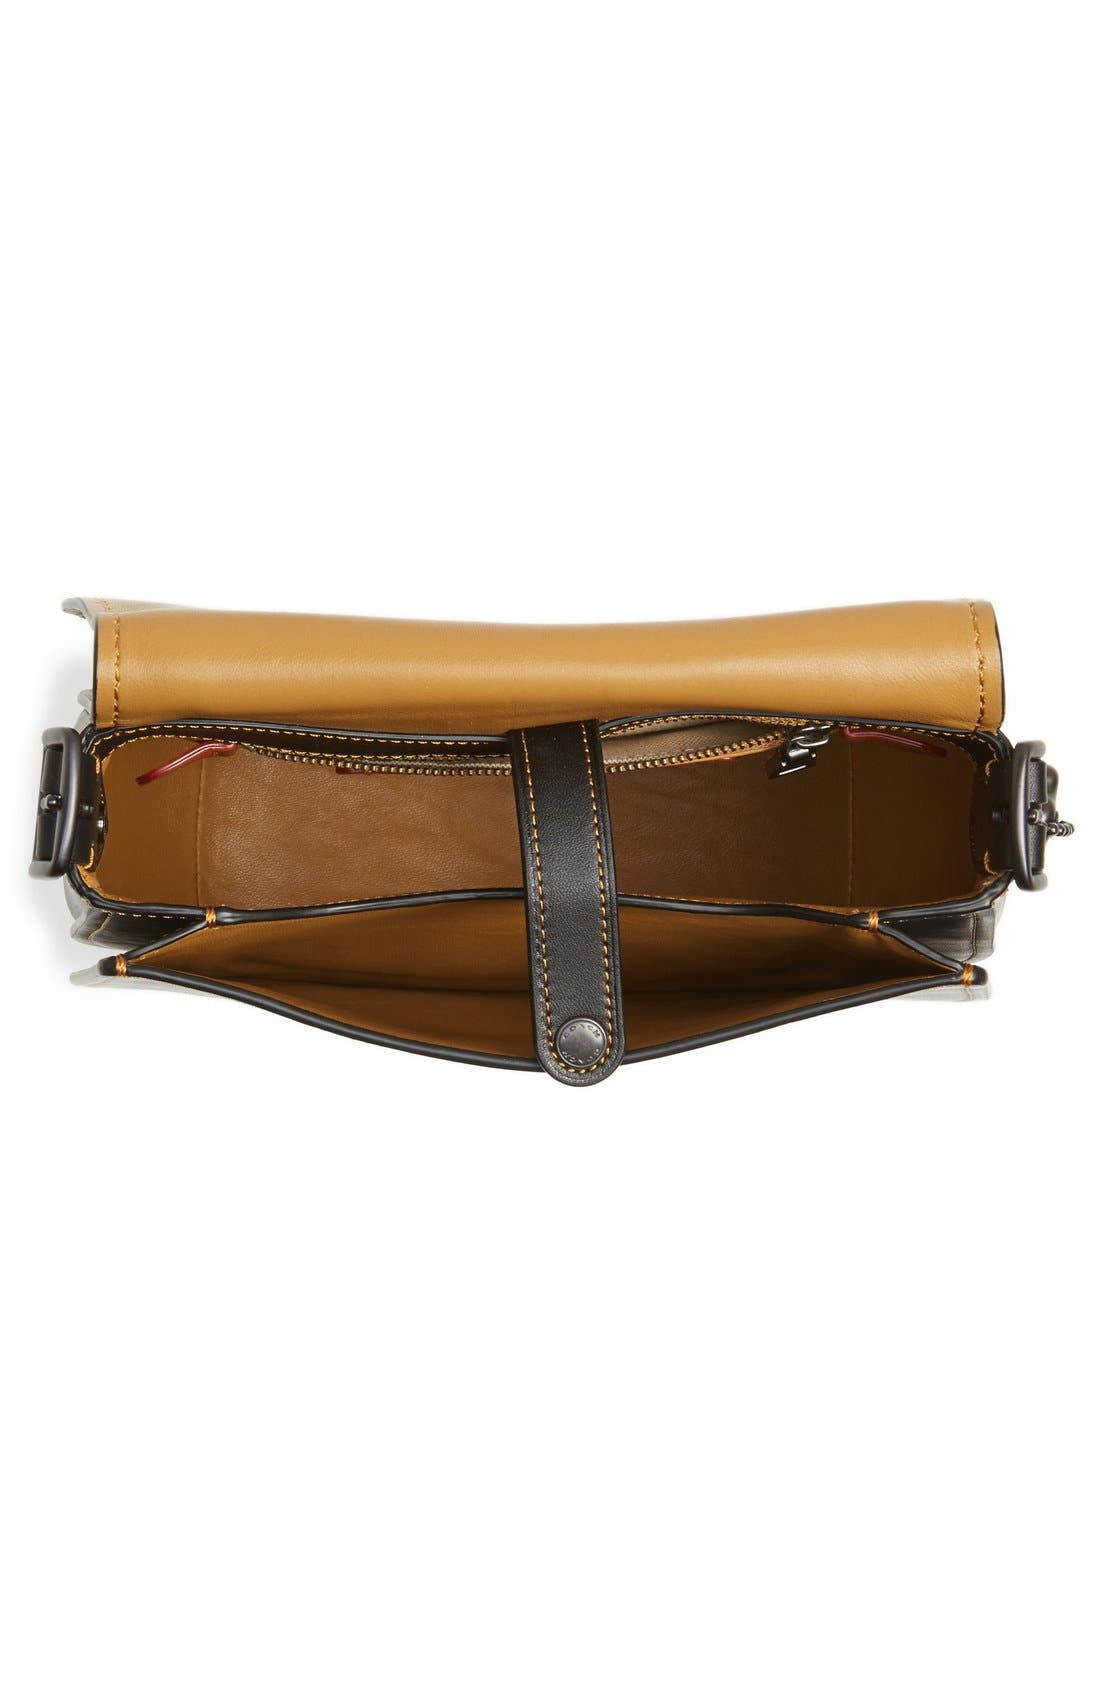 '23' Leather Saddle Bag,                             Alternate thumbnail 4, color,                             001